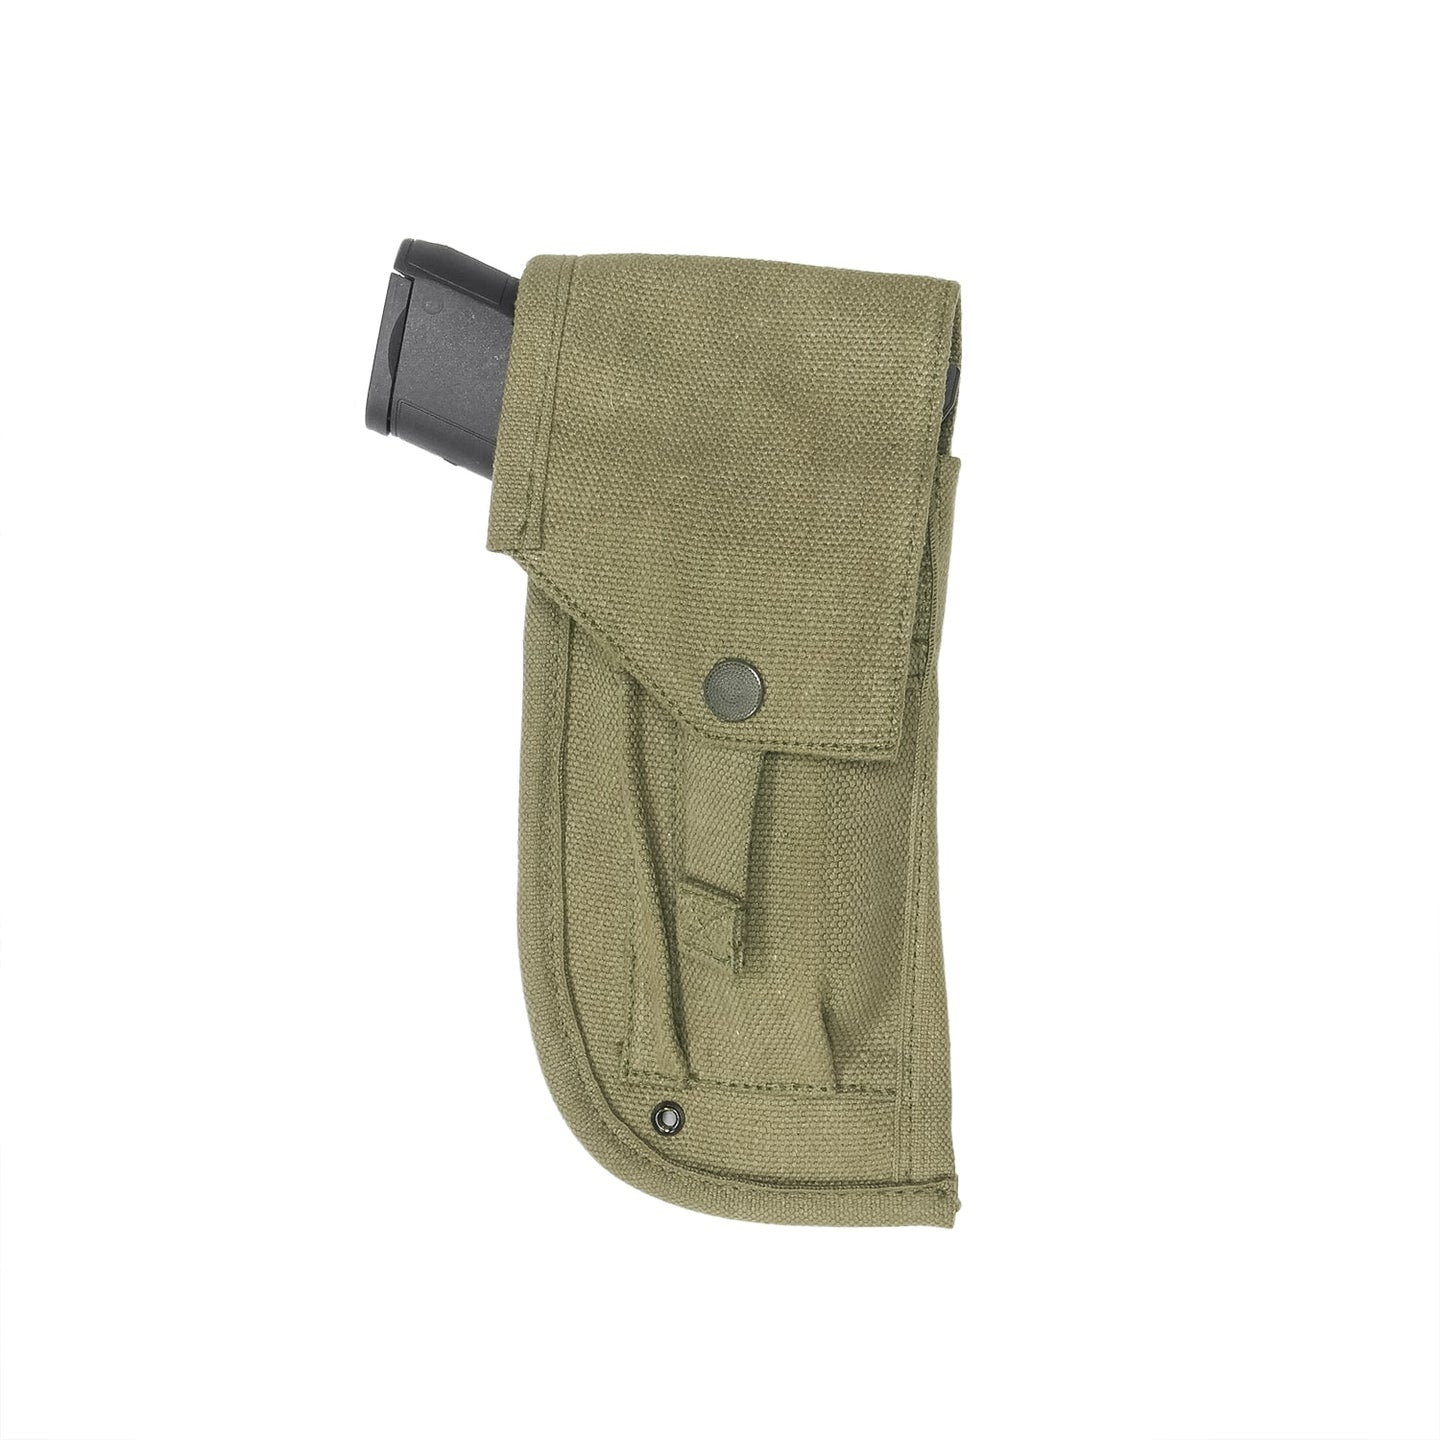 SOUTH AFRICAN DEFENSE FORCE PATTERN 73 PISTOL HOLSTER